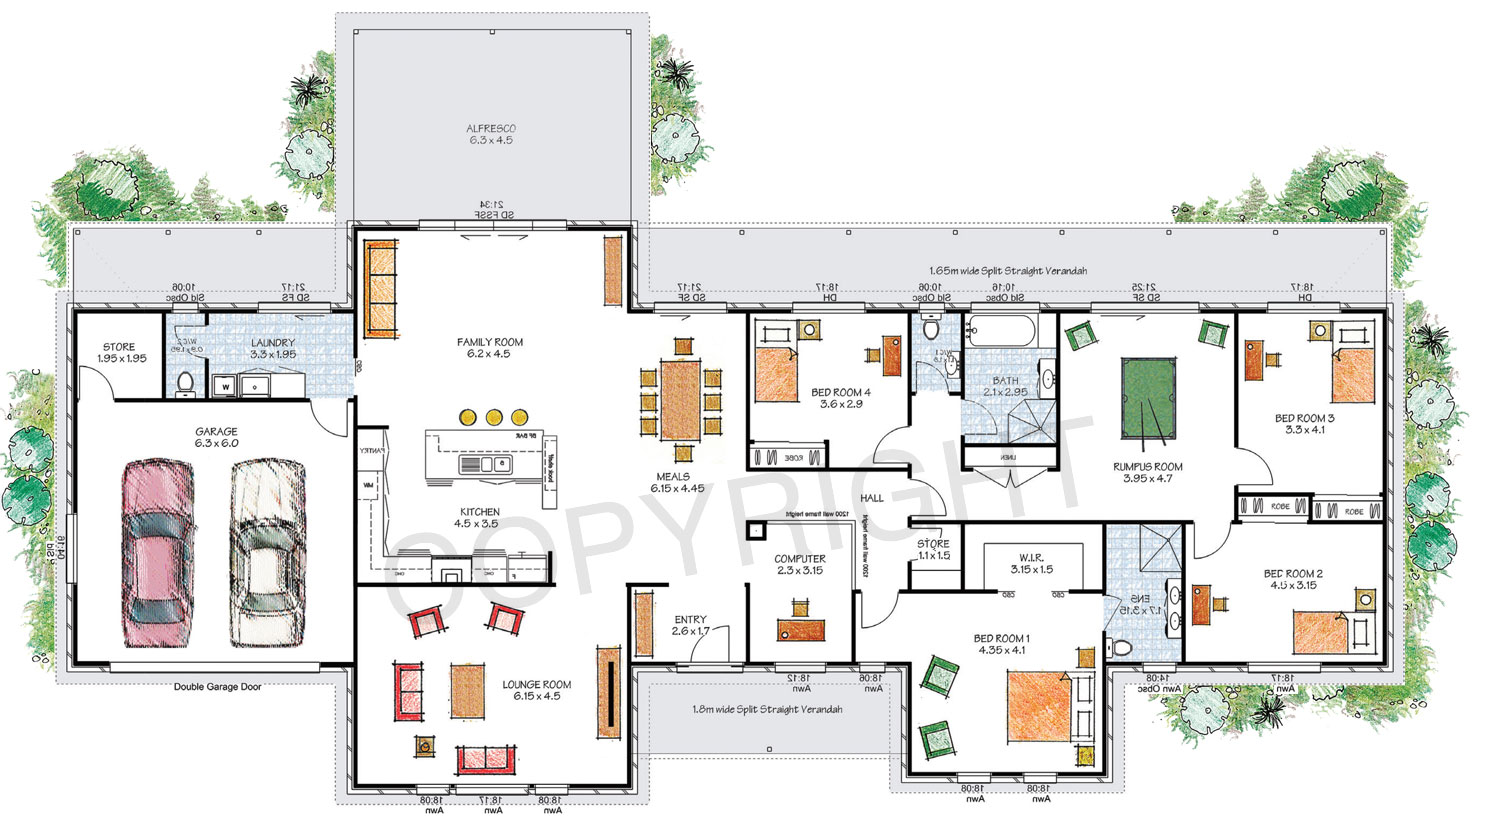 The Stanthorpe floor plan - Download a PDF here - Paal Kit Homes offer easy to build steel frame kit homes for the owner builder and have display / sale centres in Sydney NSW, Melbourne VIC, Brisbane QLD, Townsville NTH QLD, Perth WA.